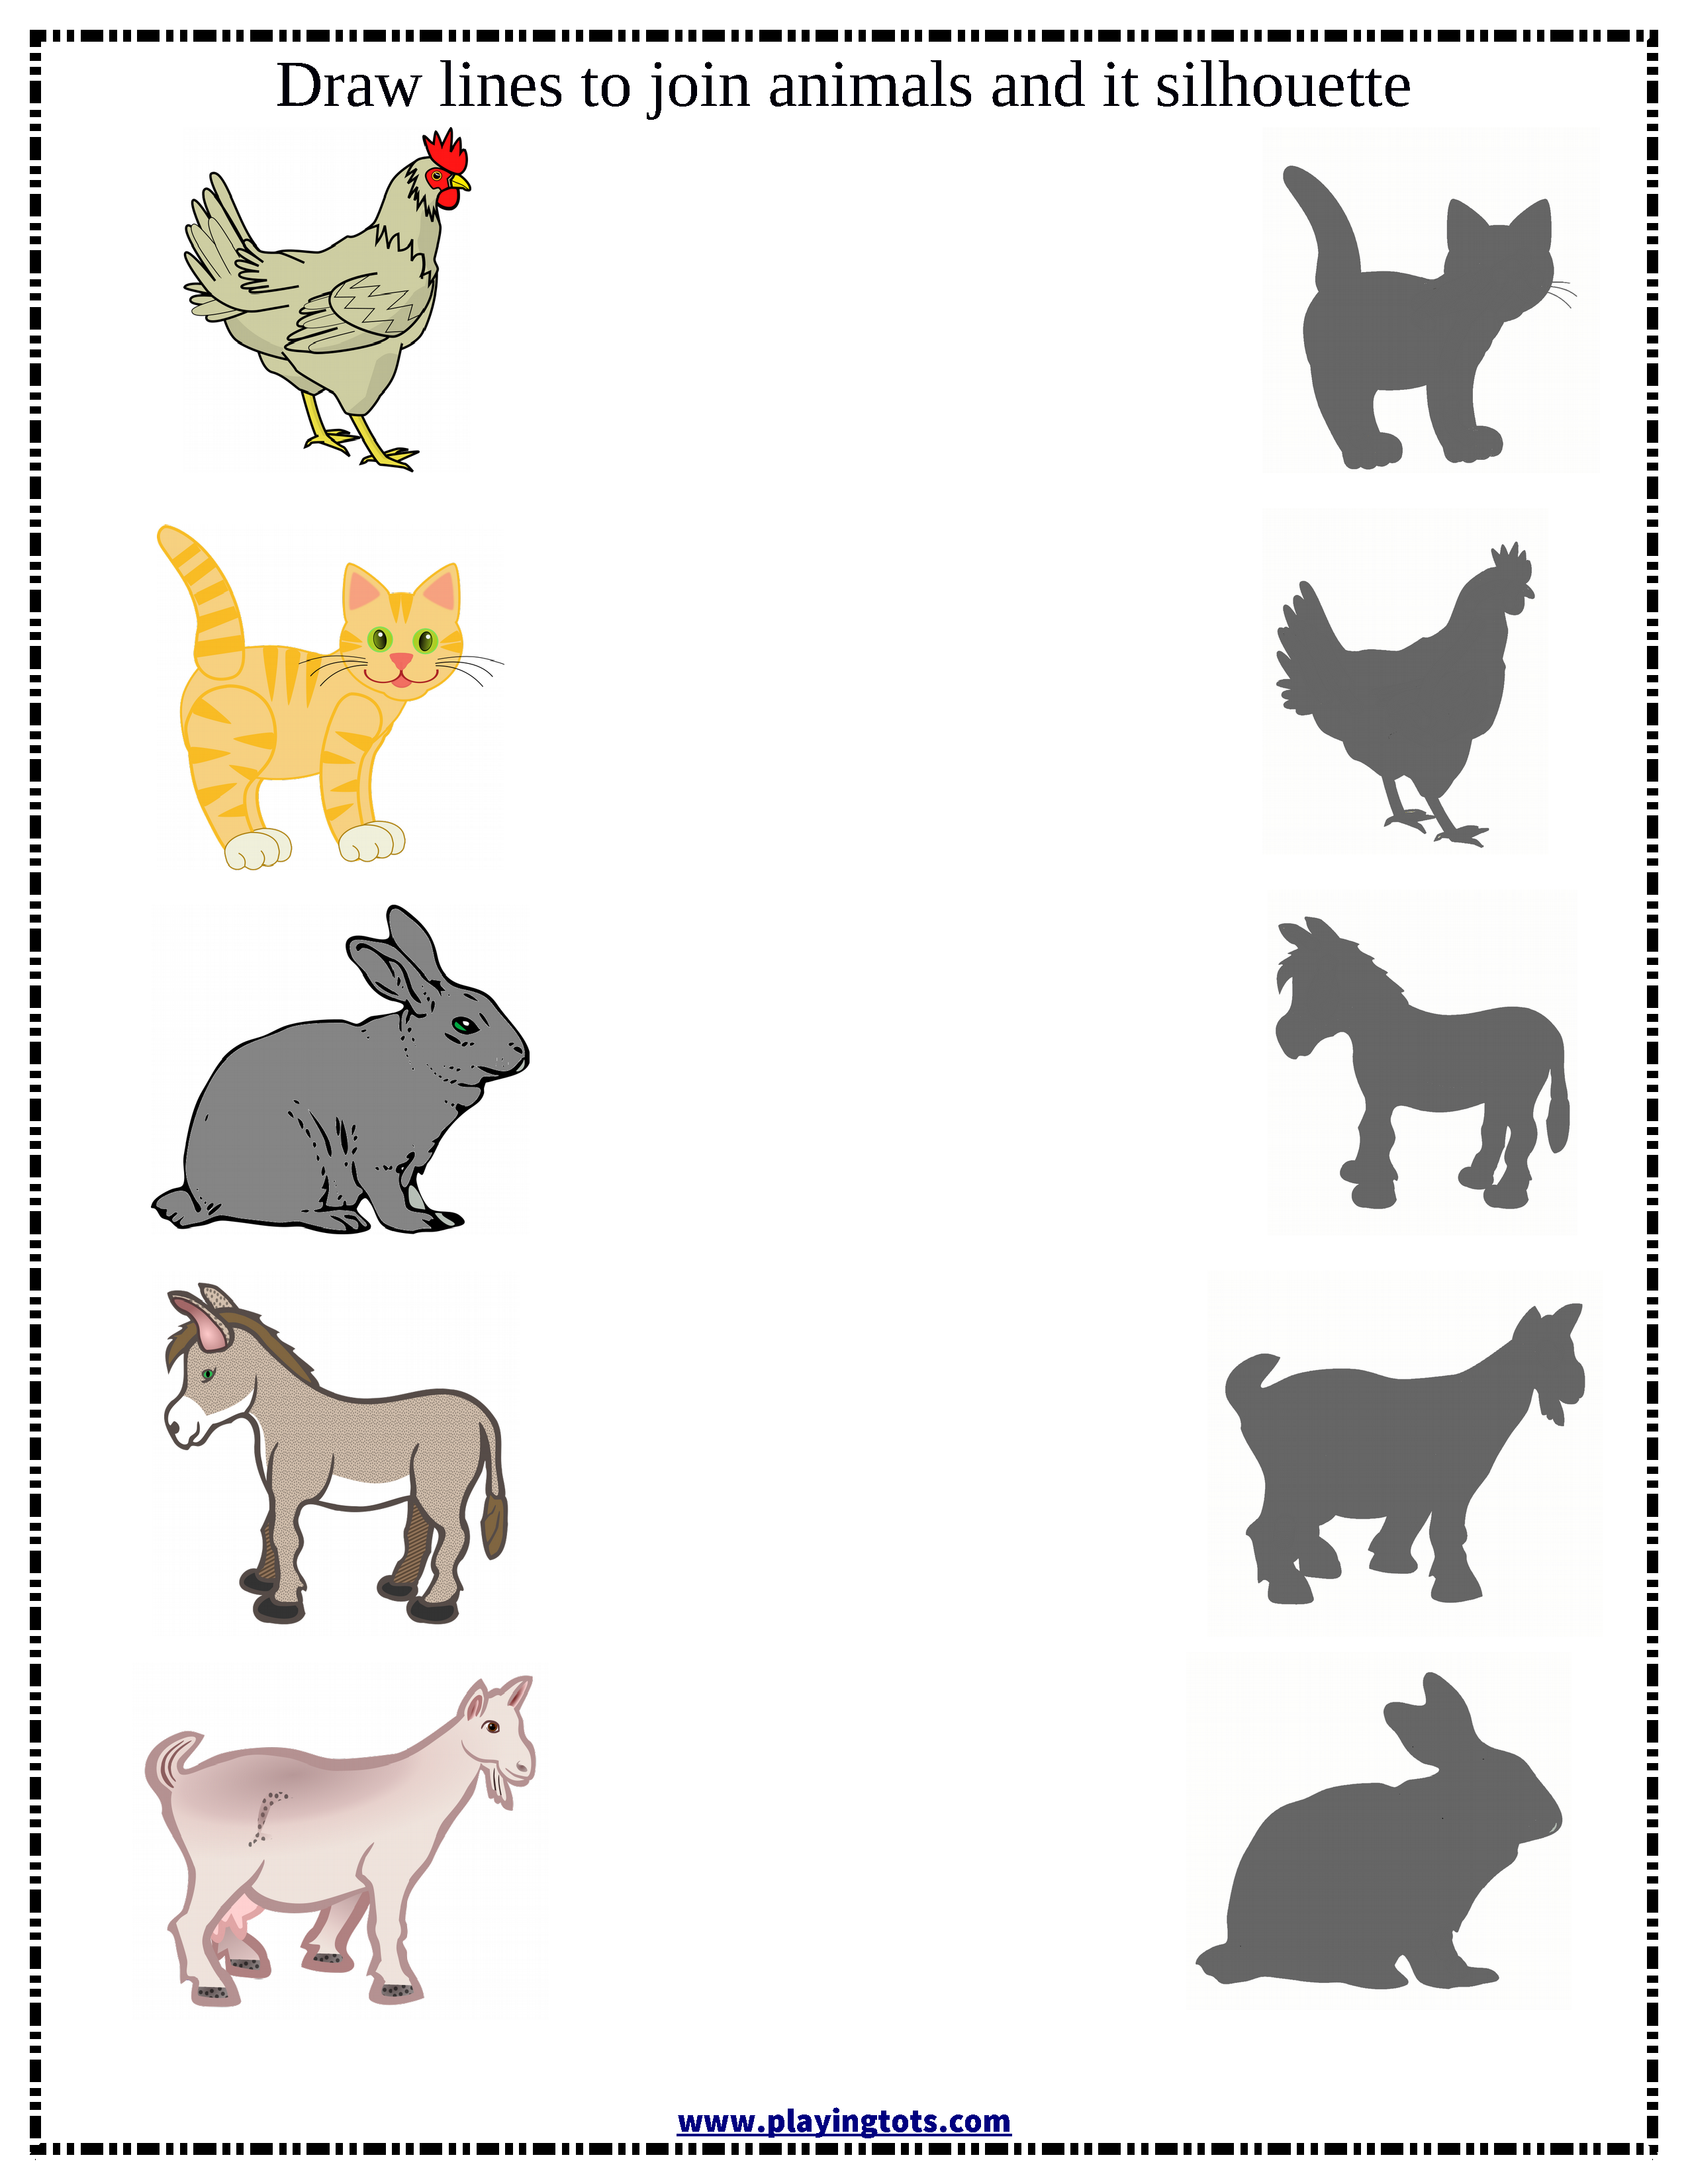 Match Animals Silhouette Worksheet Free Printable File Folder Learn Play Toddler Preschool Mom Kid Toddler Learning Activities Preschool Flashcards For Kids [ 3300 x 2550 Pixel ]